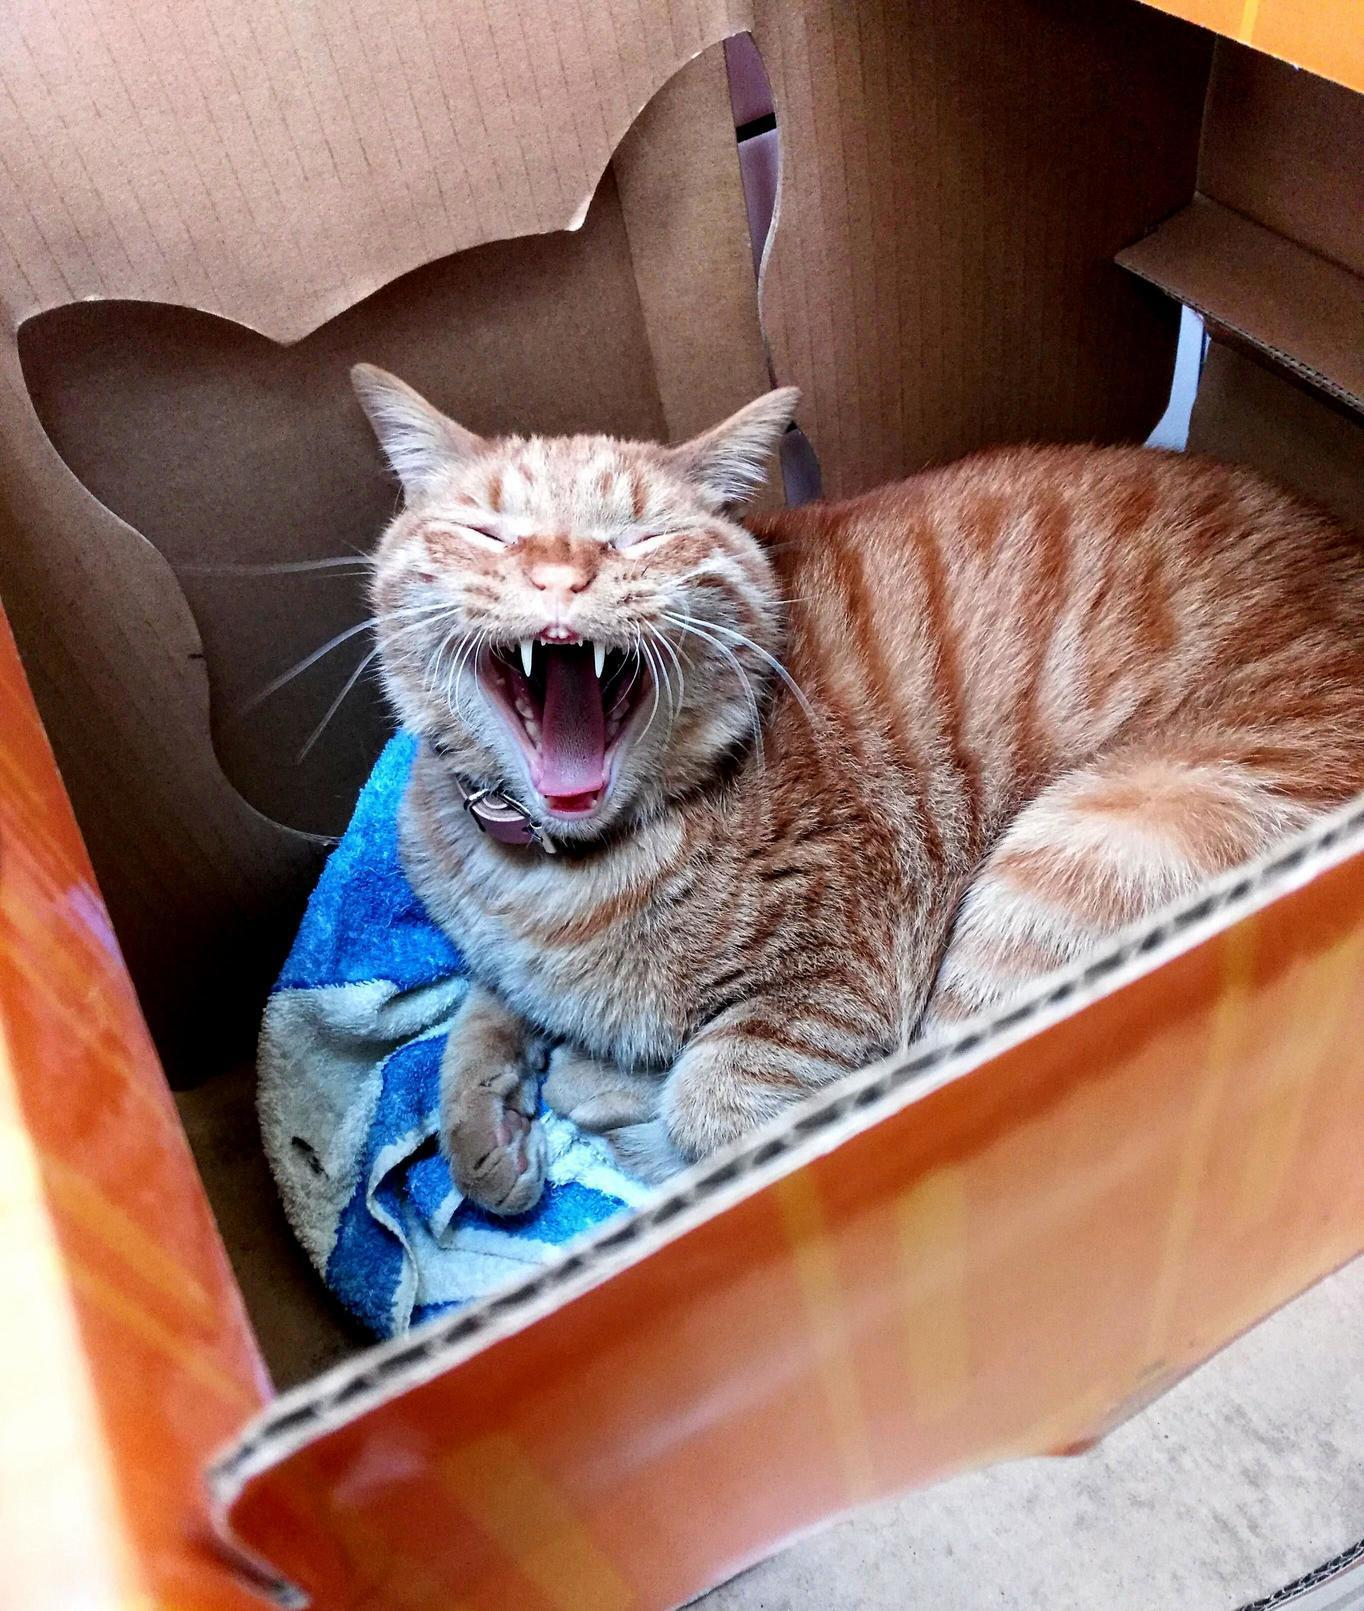 Percy the cafe cat is loving my jokes. definitely laughing. not yawning. 100% not yawning….